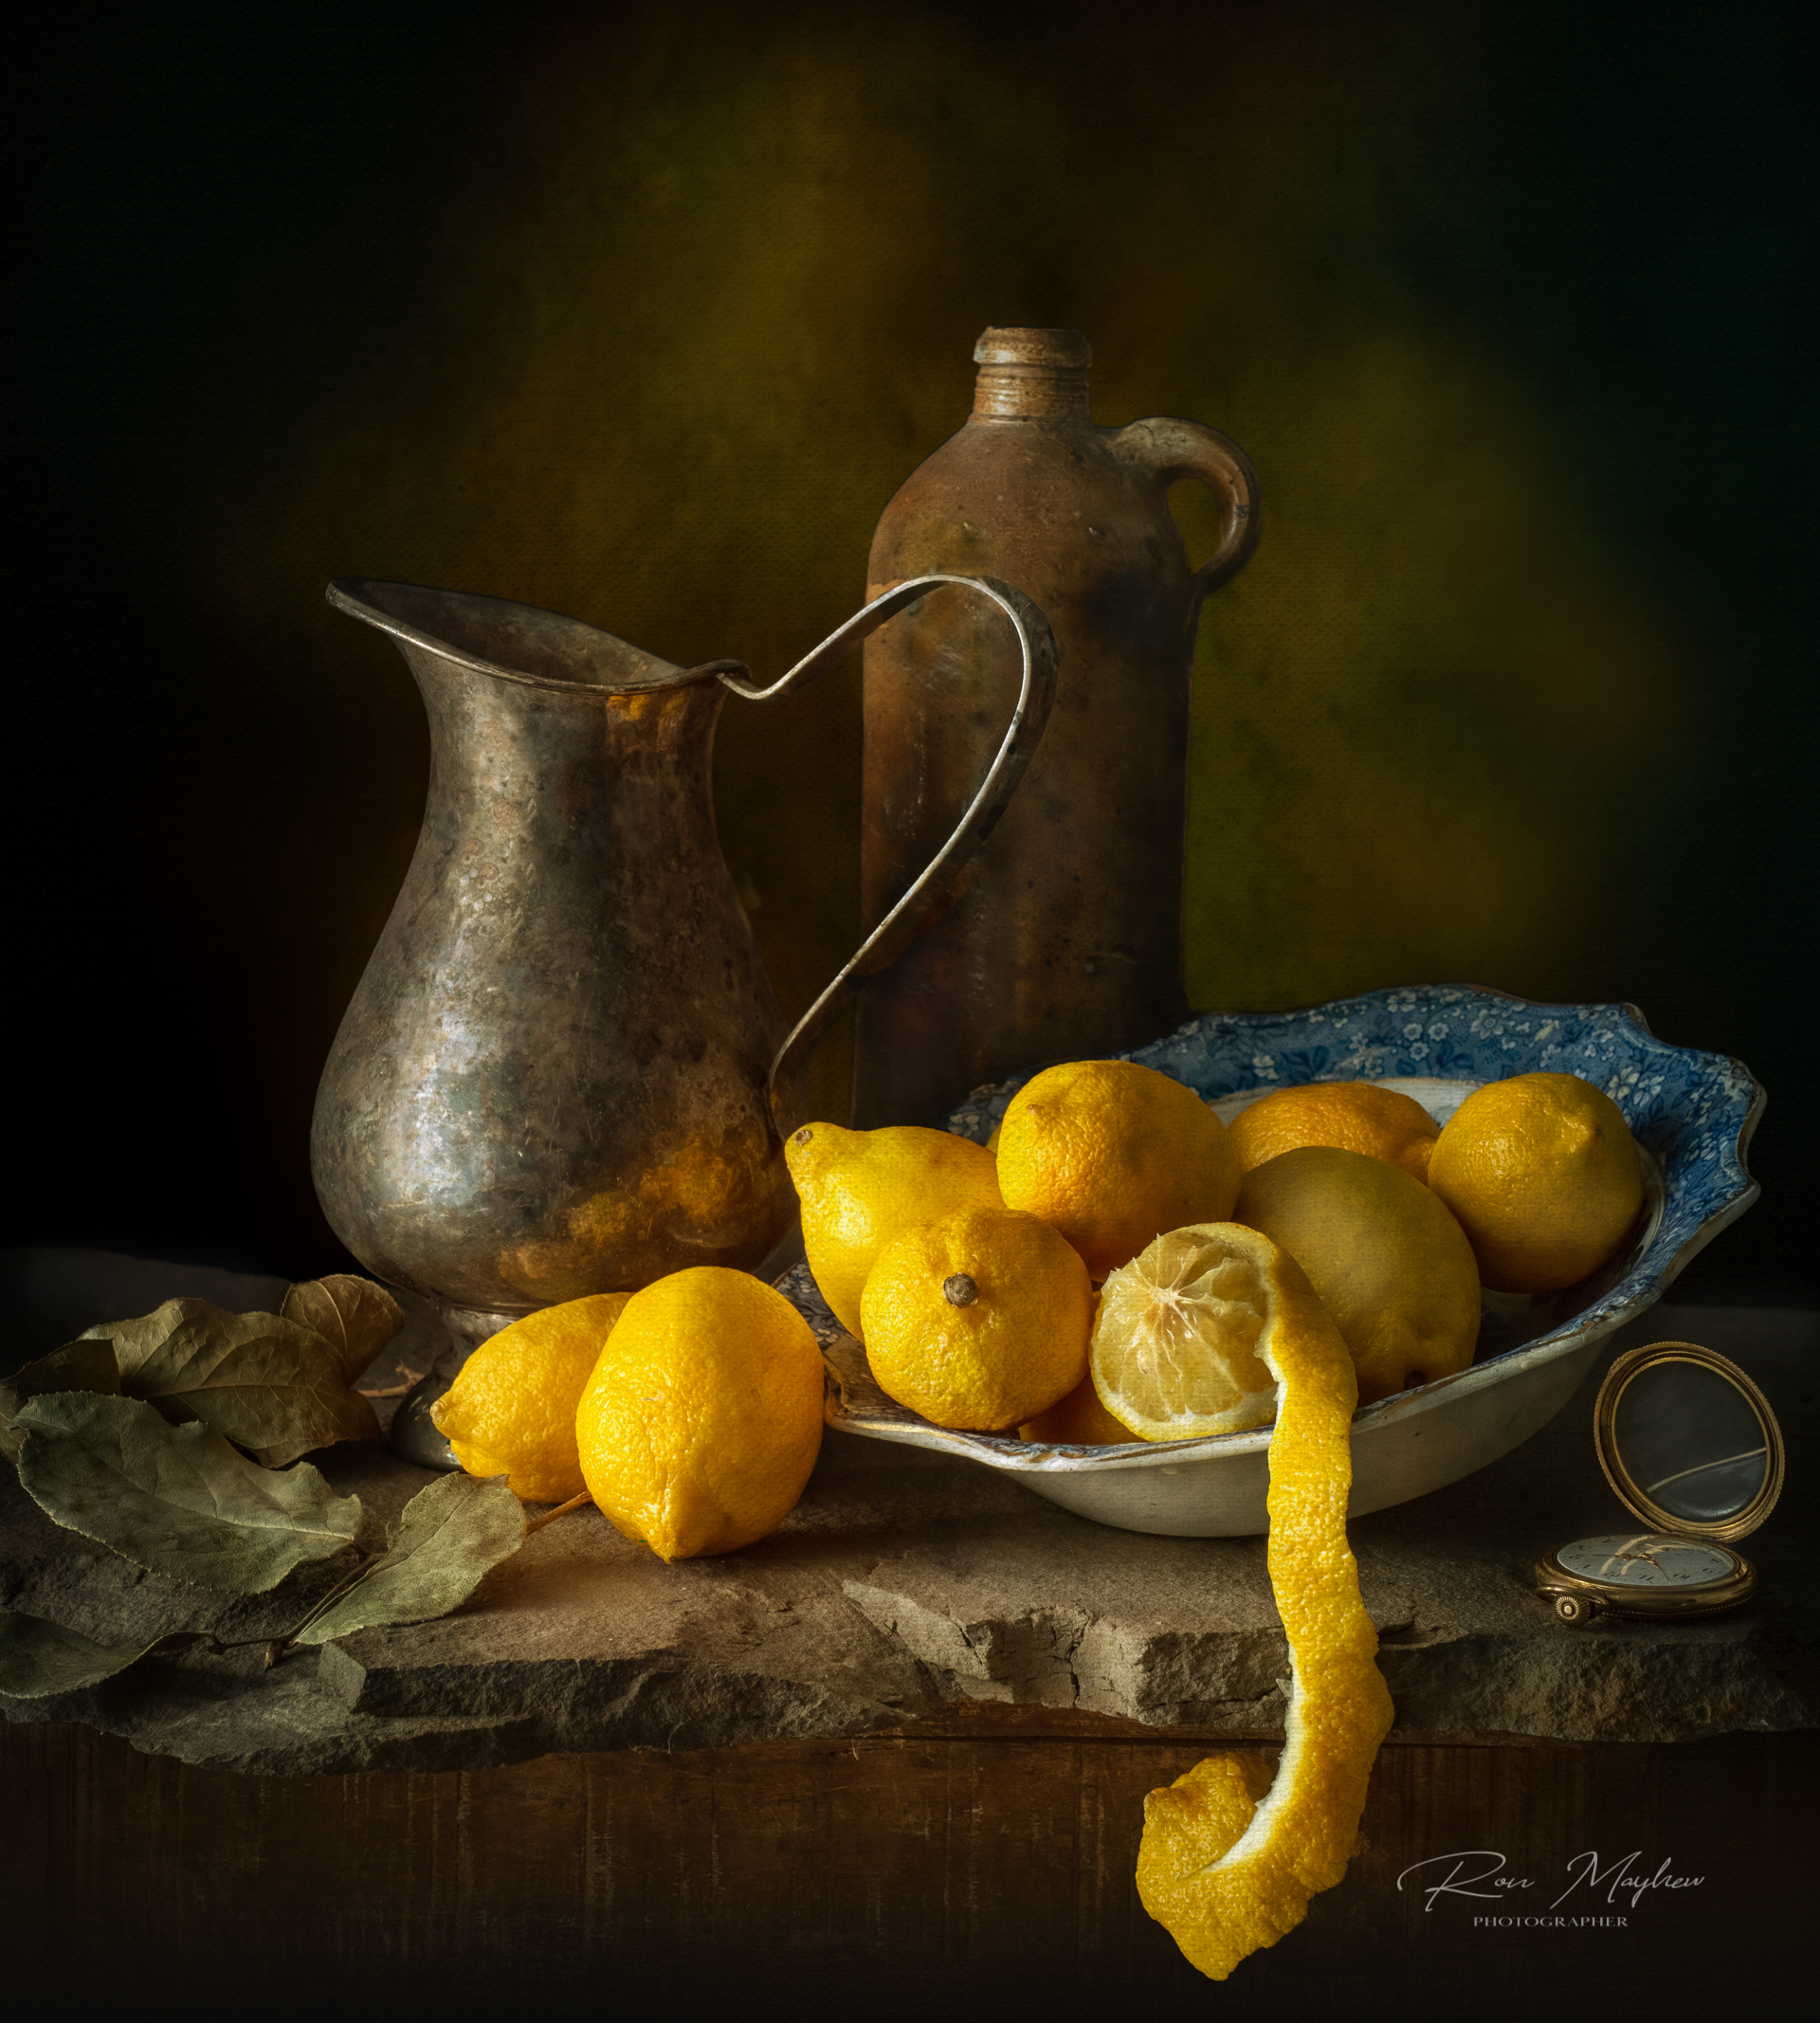 Still Life with Lemons and Silver Jug